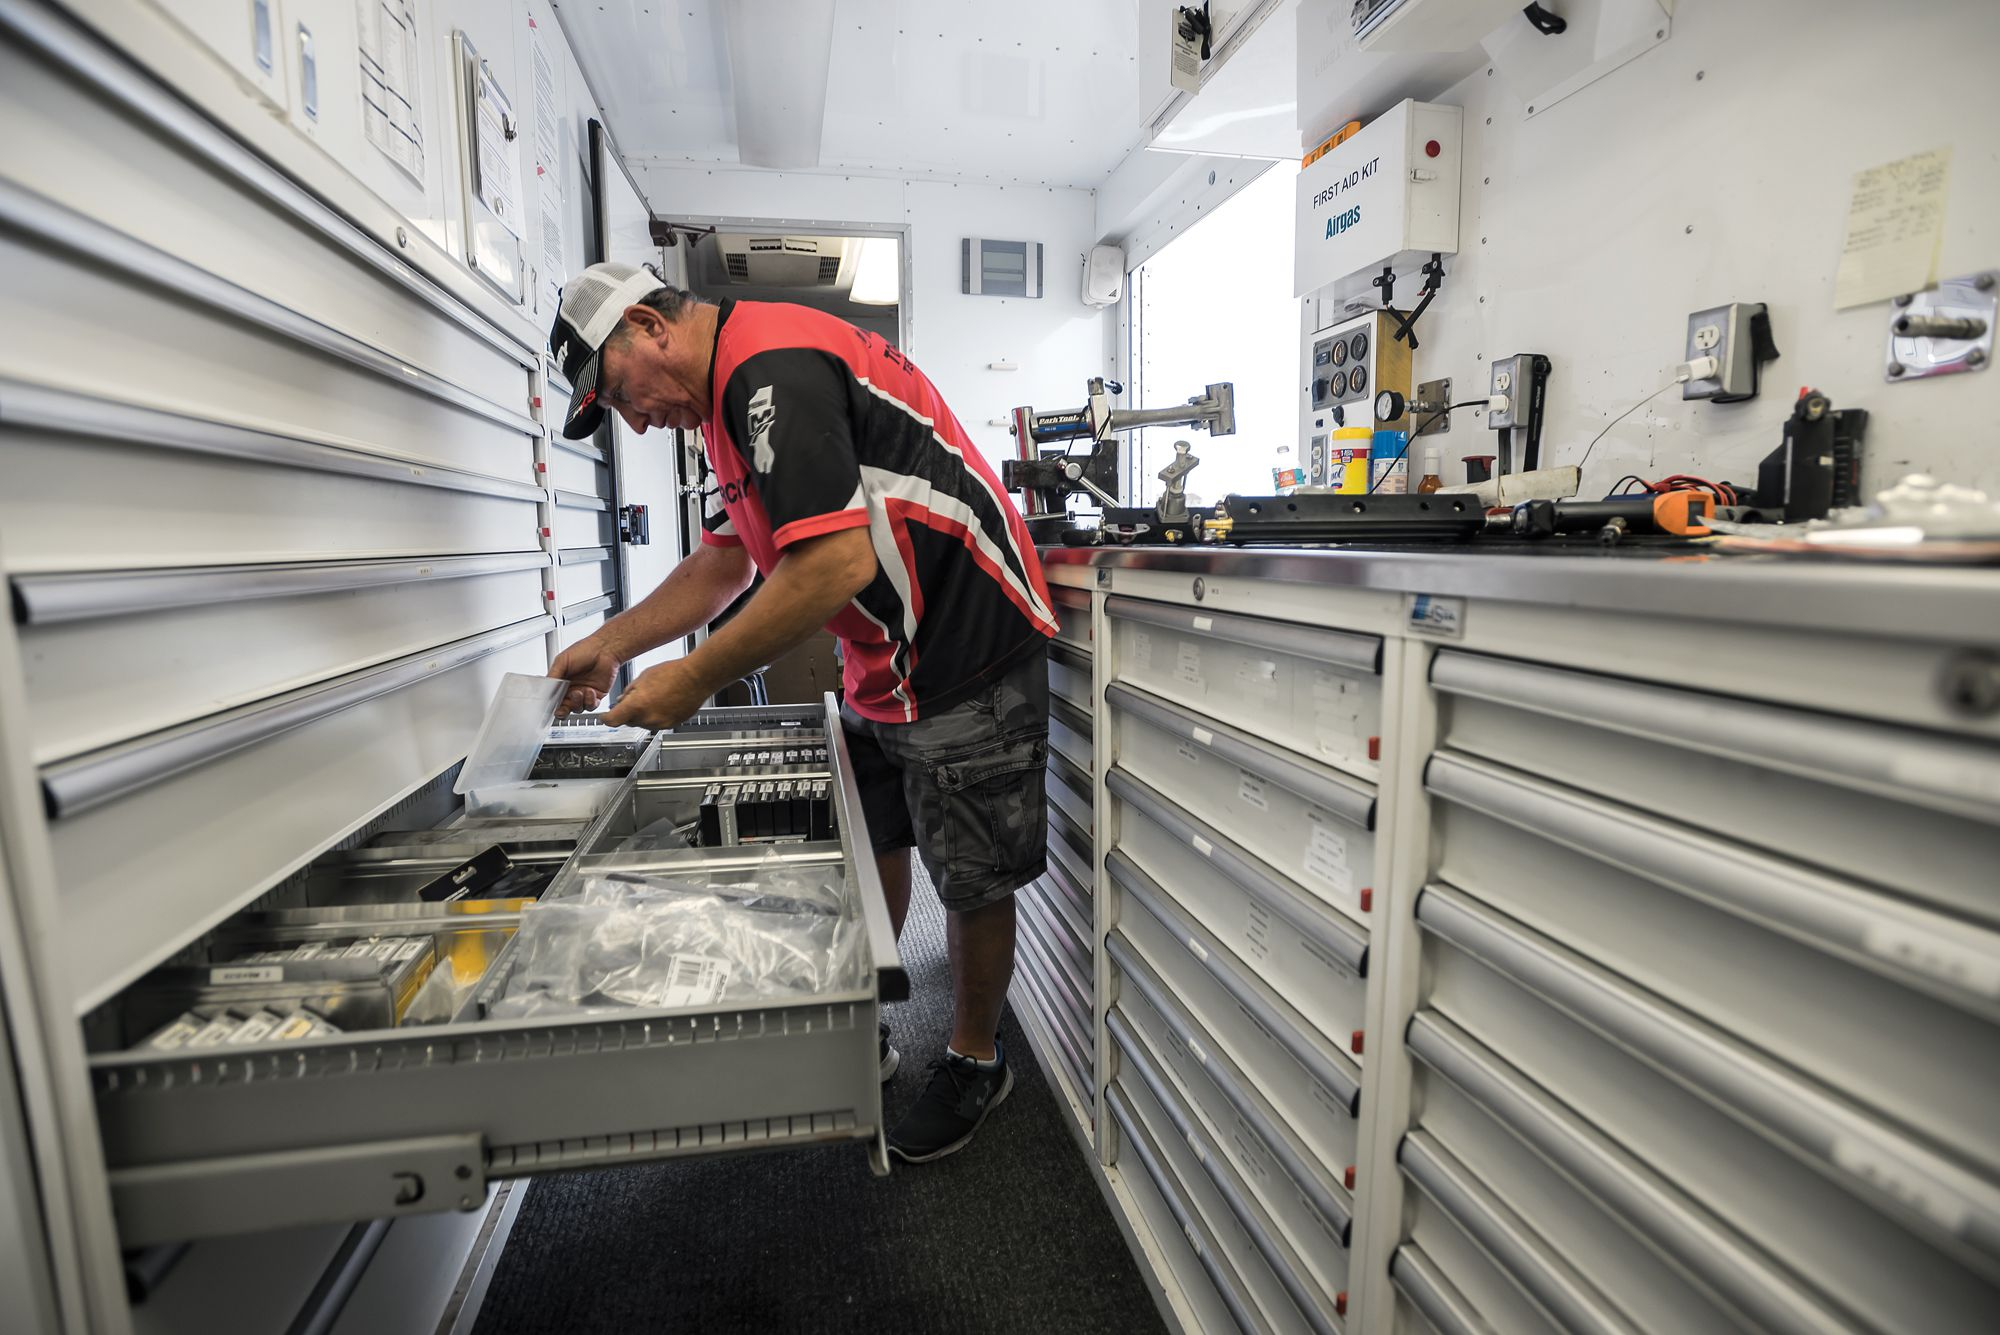 Engine Tips From Mercury's Bassmaster Outboard Technician